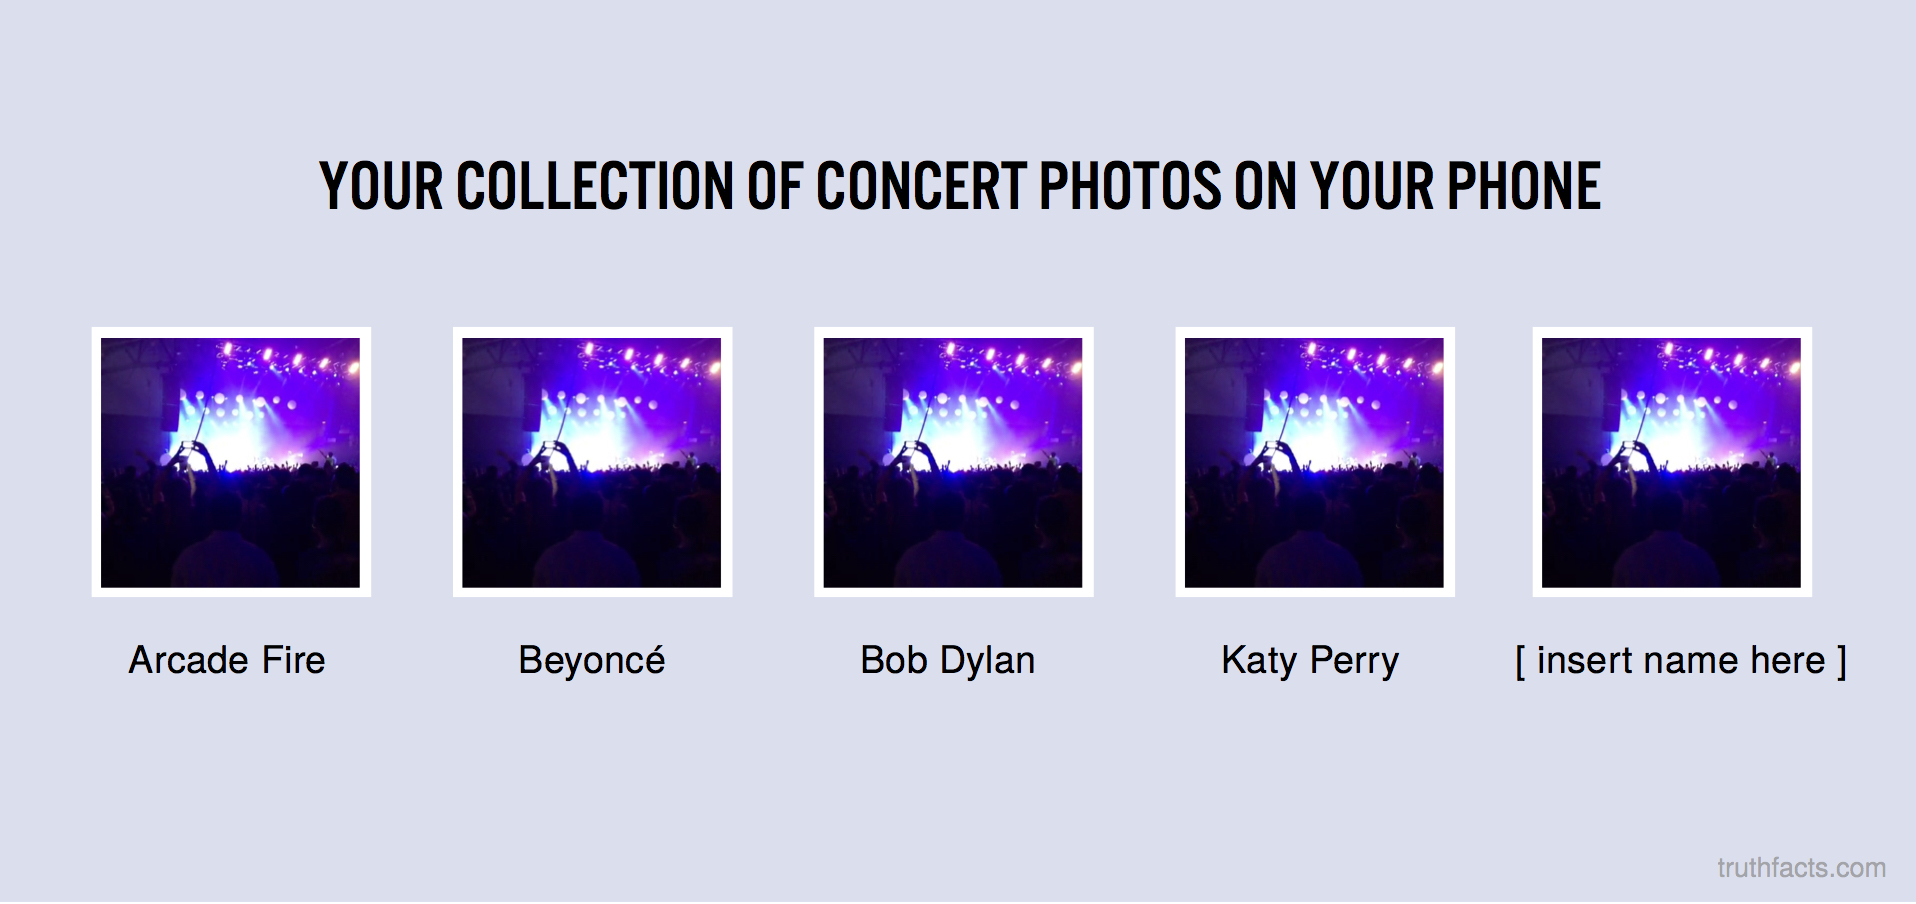 Your collection og concert photos on your phone